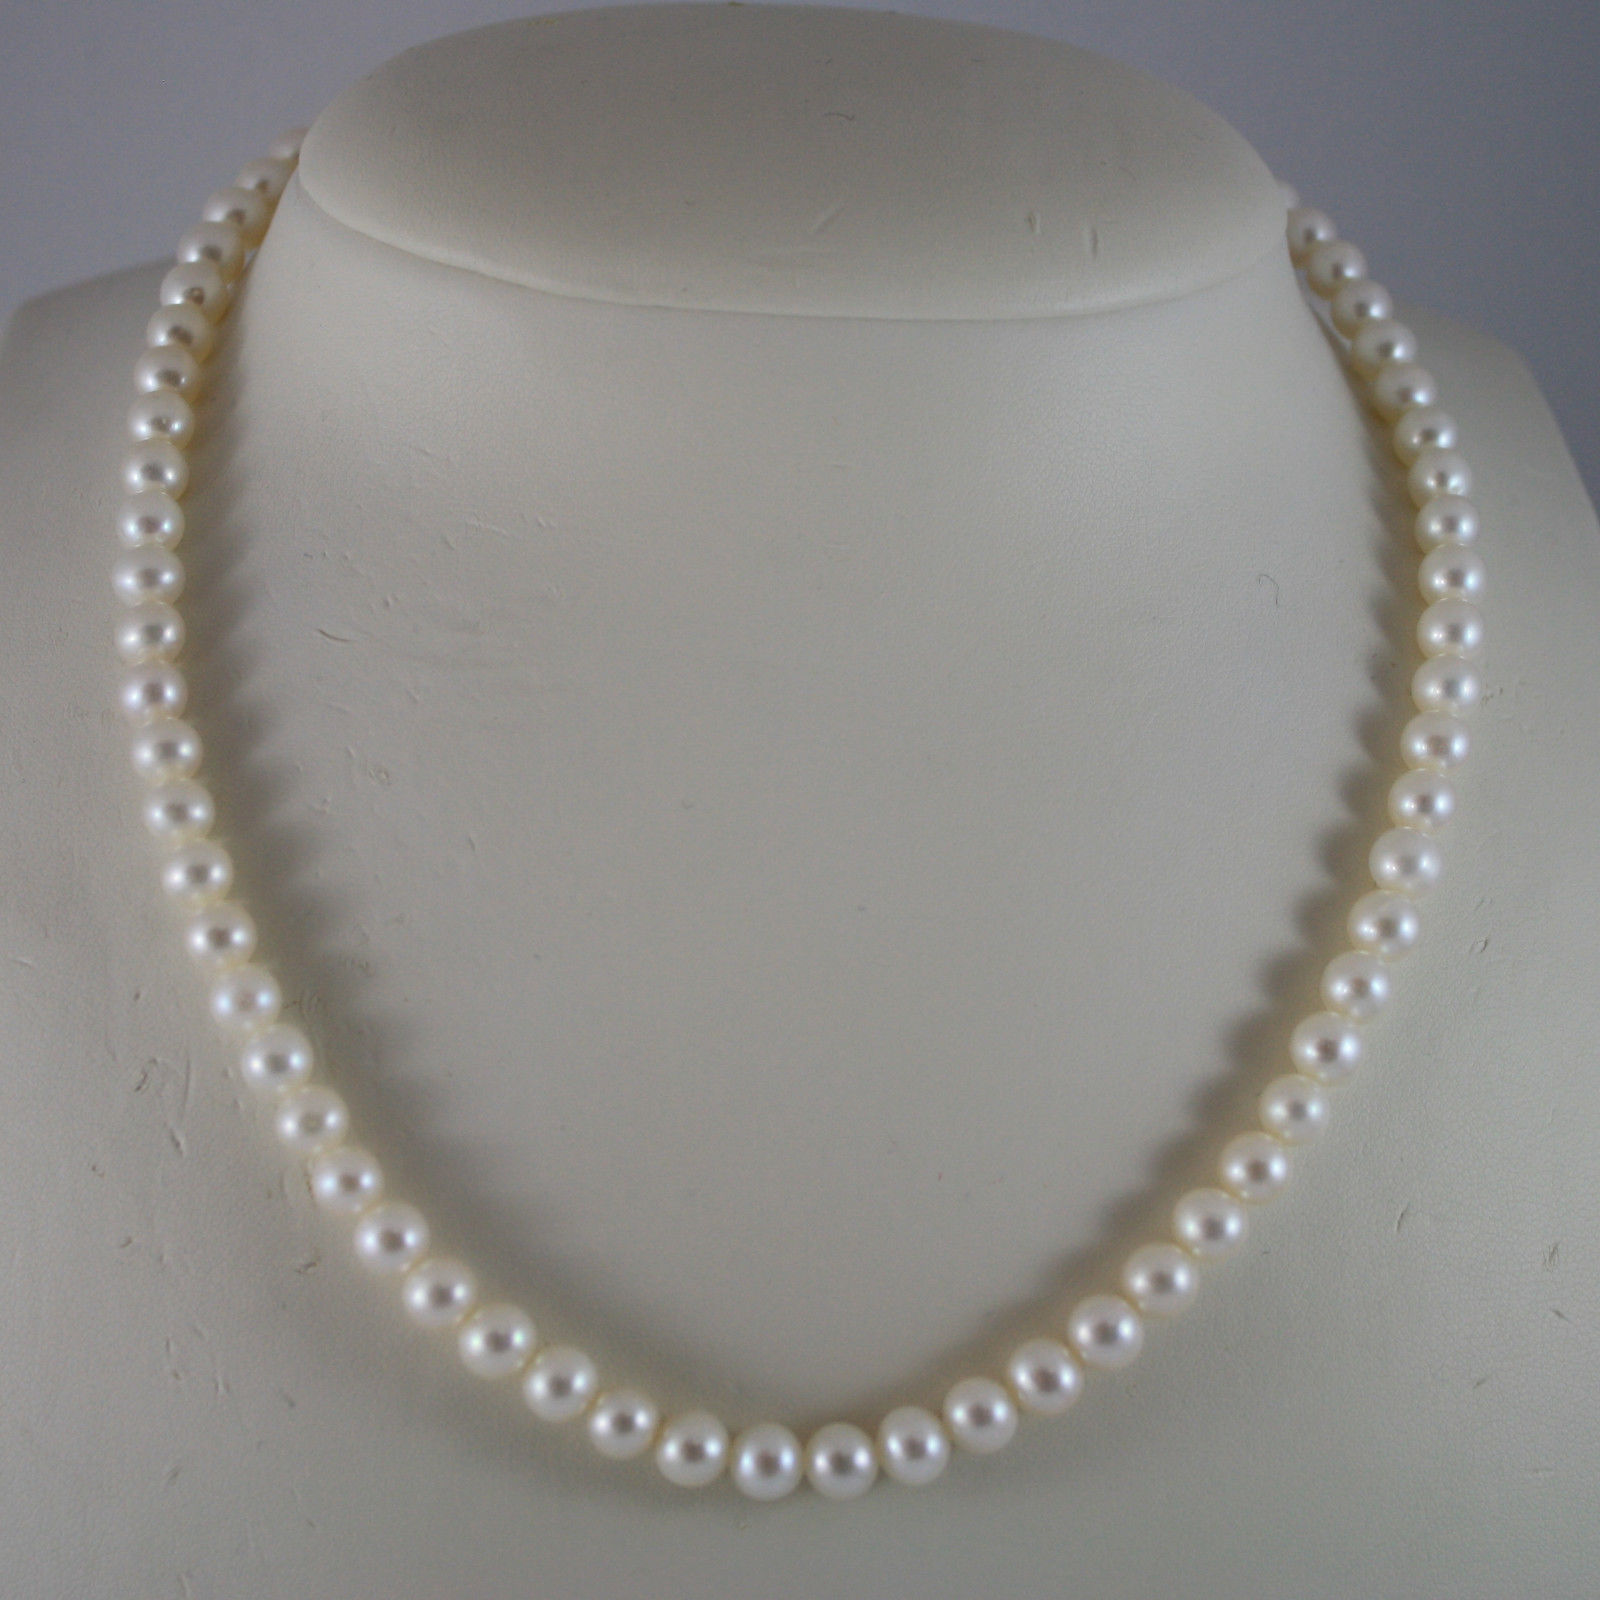 NECKLACE WITH WHITE PEARLS DIAM. 0,2 IN, 18KT 750 WHITE GOLD CLOSURE LENGTH 17,1